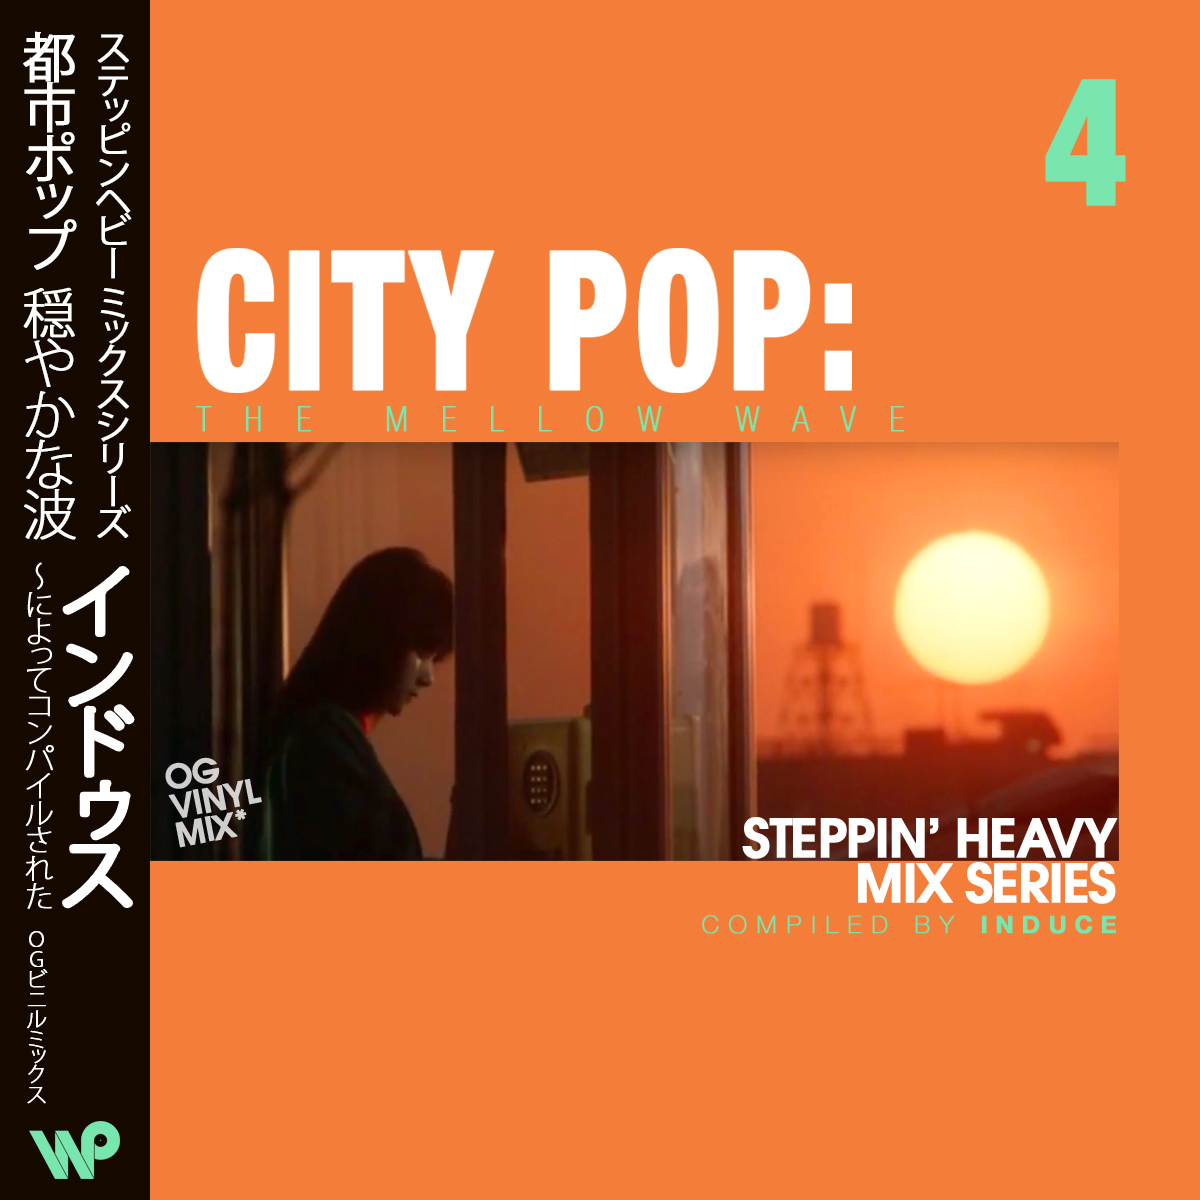 Steppin' Heavy Mix Series #4: City Pop & The Mellow Wave